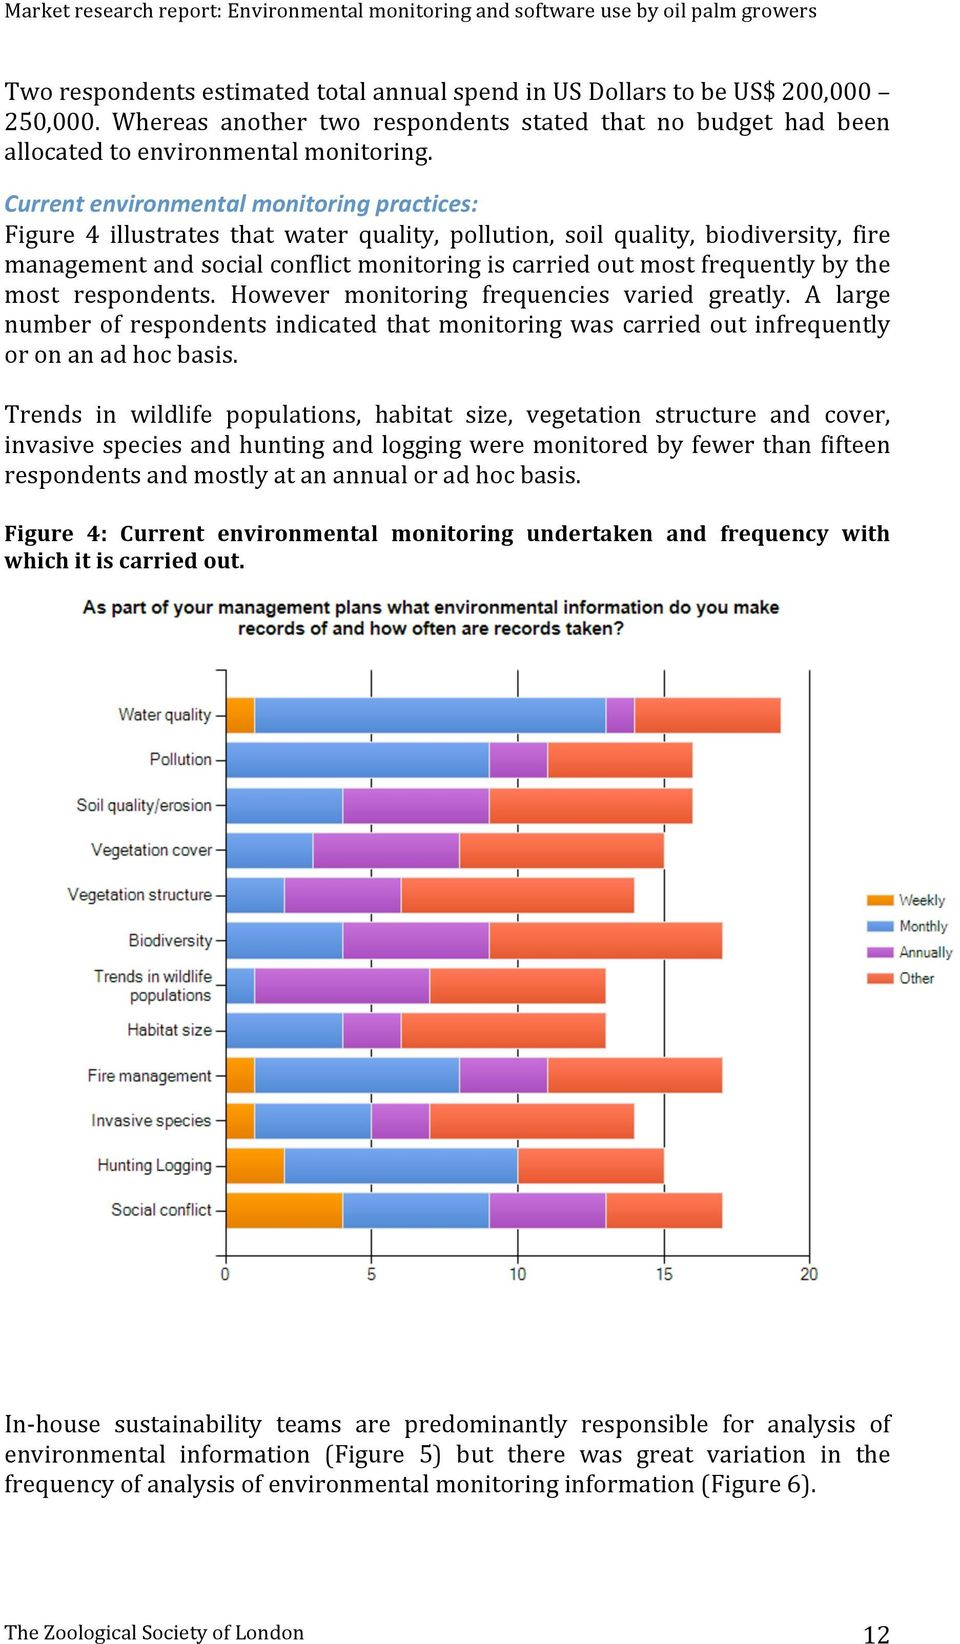 Currentenvironmentalmonitoringpractices: Figure 4 illustrates that water quality, pollution, soil quality, biodiversity, fire managementandsocialconflictmonitoringiscarriedoutmostfrequentlybythe most